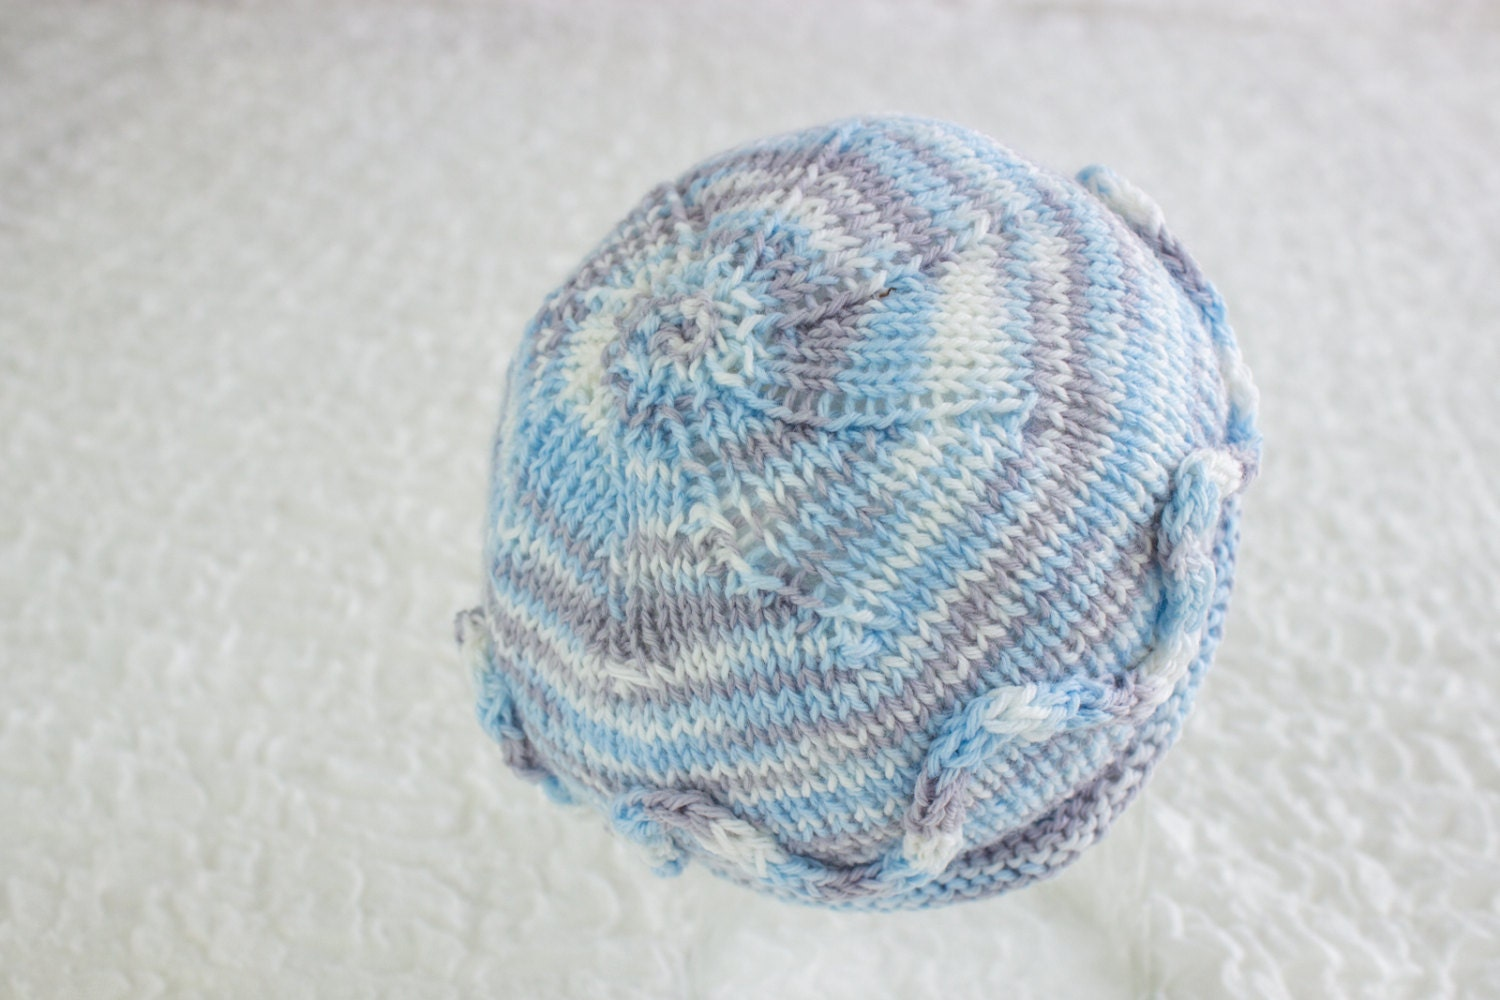 Newborn Knit Patterns : FREE KNITTING PATTERN Simple Newborn Beanie Newborn Hat